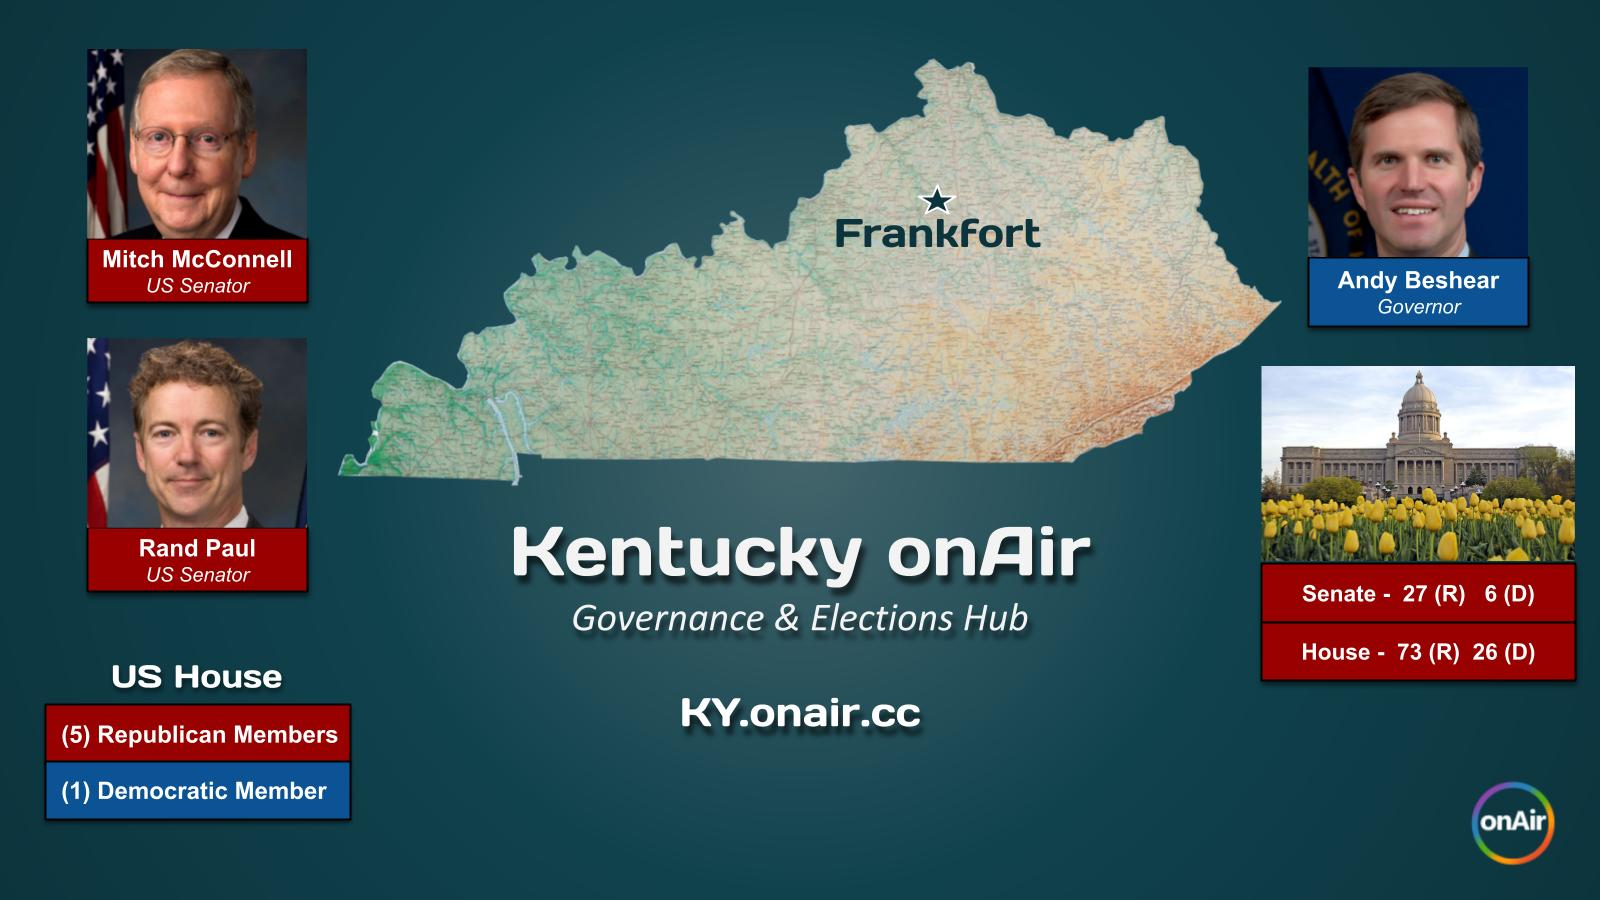 About KY onAir